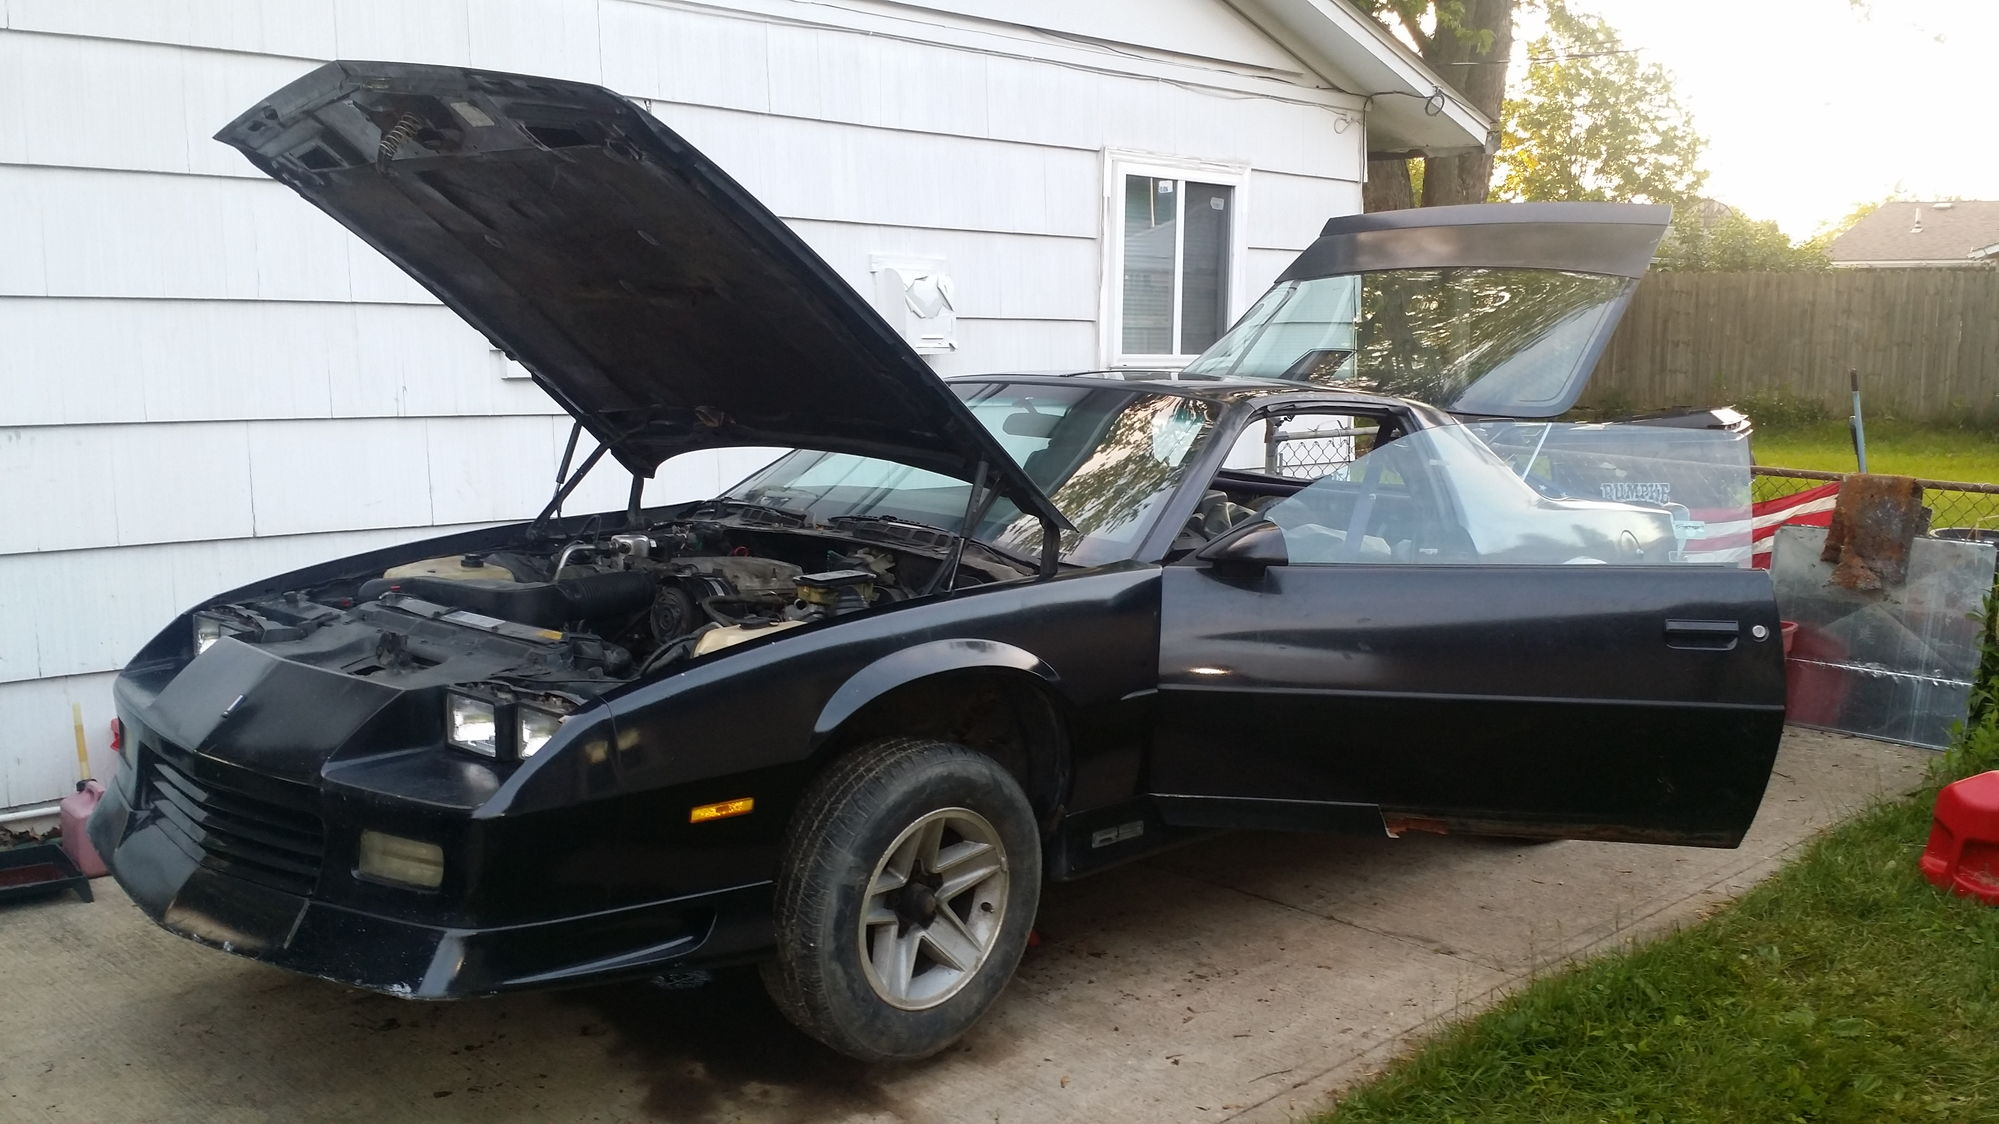 Fuel Pump Relais Starting Problems With 92 Firebird V6 Third 1986 Camaro Steering Column Wiring Diagram Generation F For Sale I Have A Running 31l Numbers Matching Thirdgen This 1992 Rs Is 25th Anniversary Edition Commemorating The Final Year Of Most